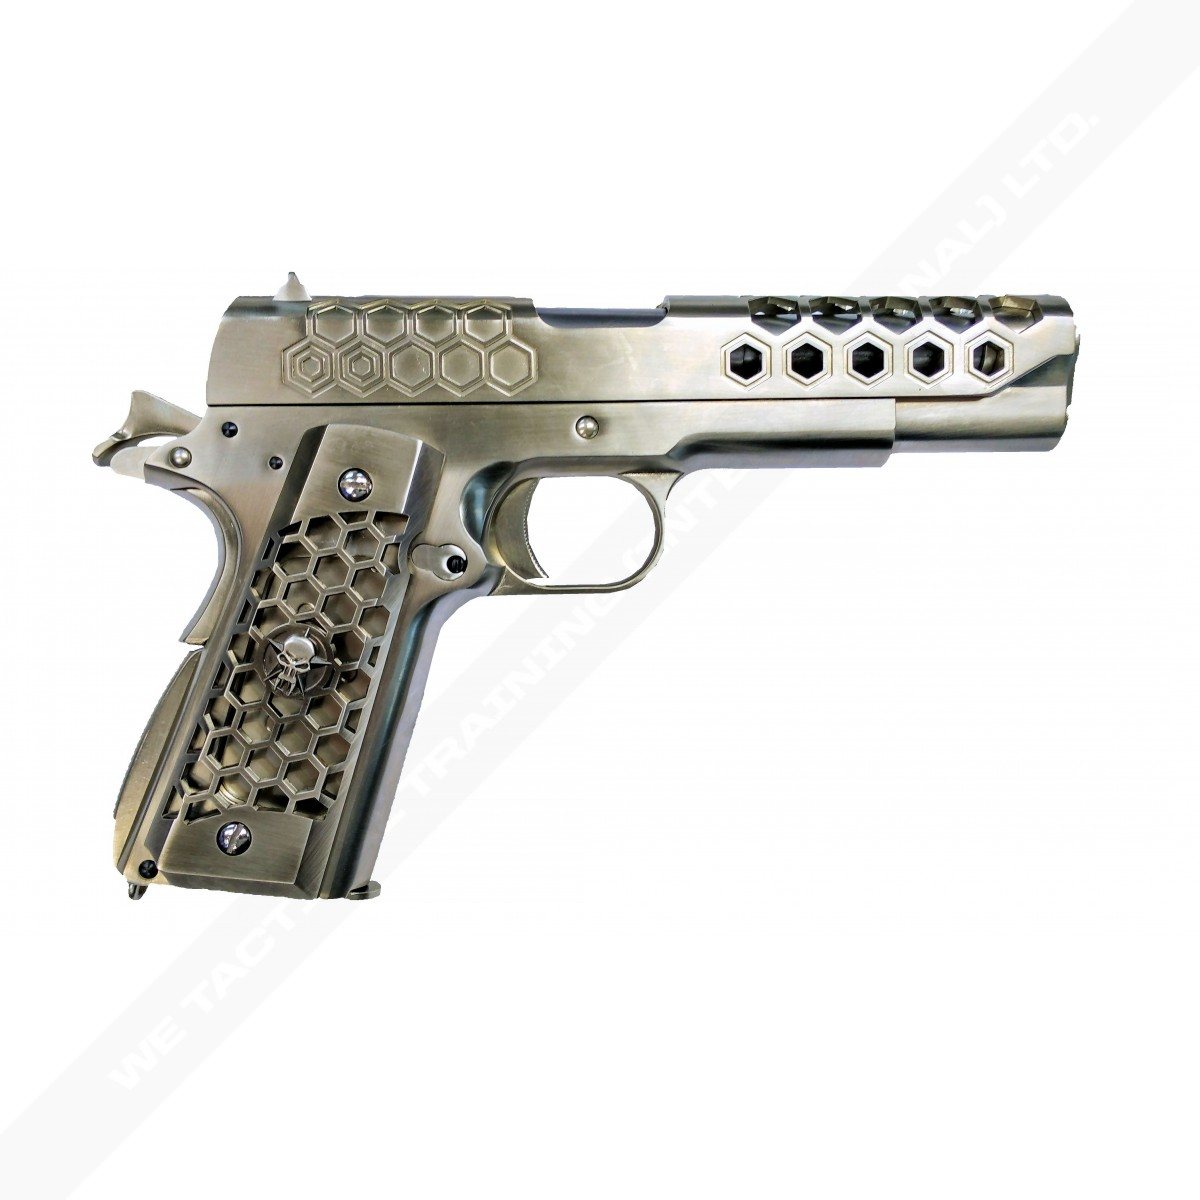 WE 1911 Hex Cut Full Metal Gas Blowback Pistol - Silver